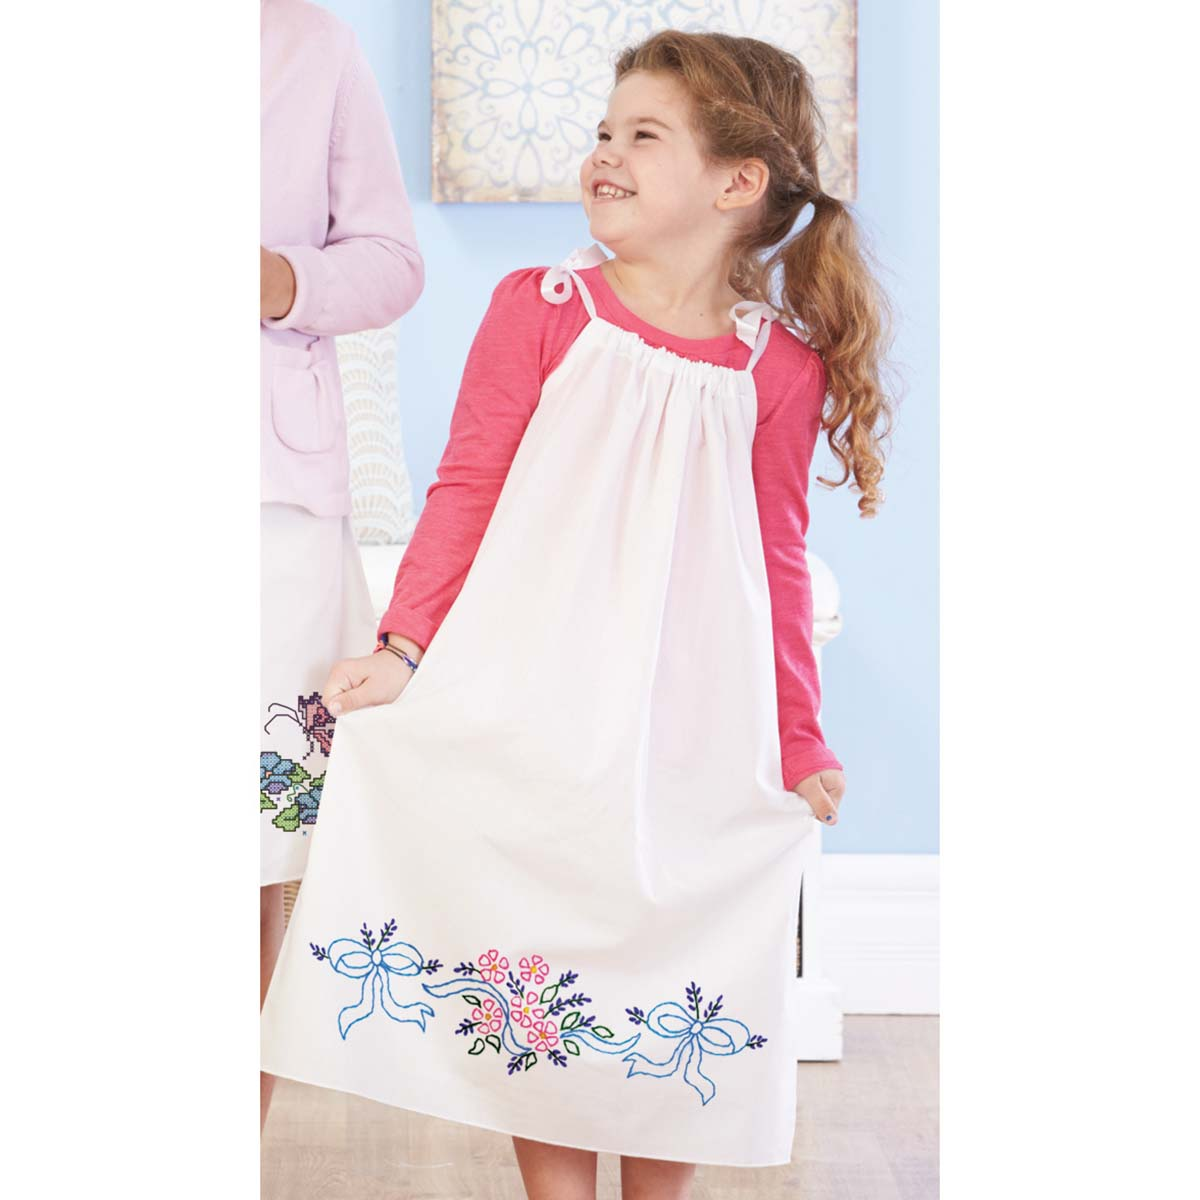 Herrschners® Pillowcase Dress-Flowers, Ribbons, & Bows Stamped Embroidery Kit